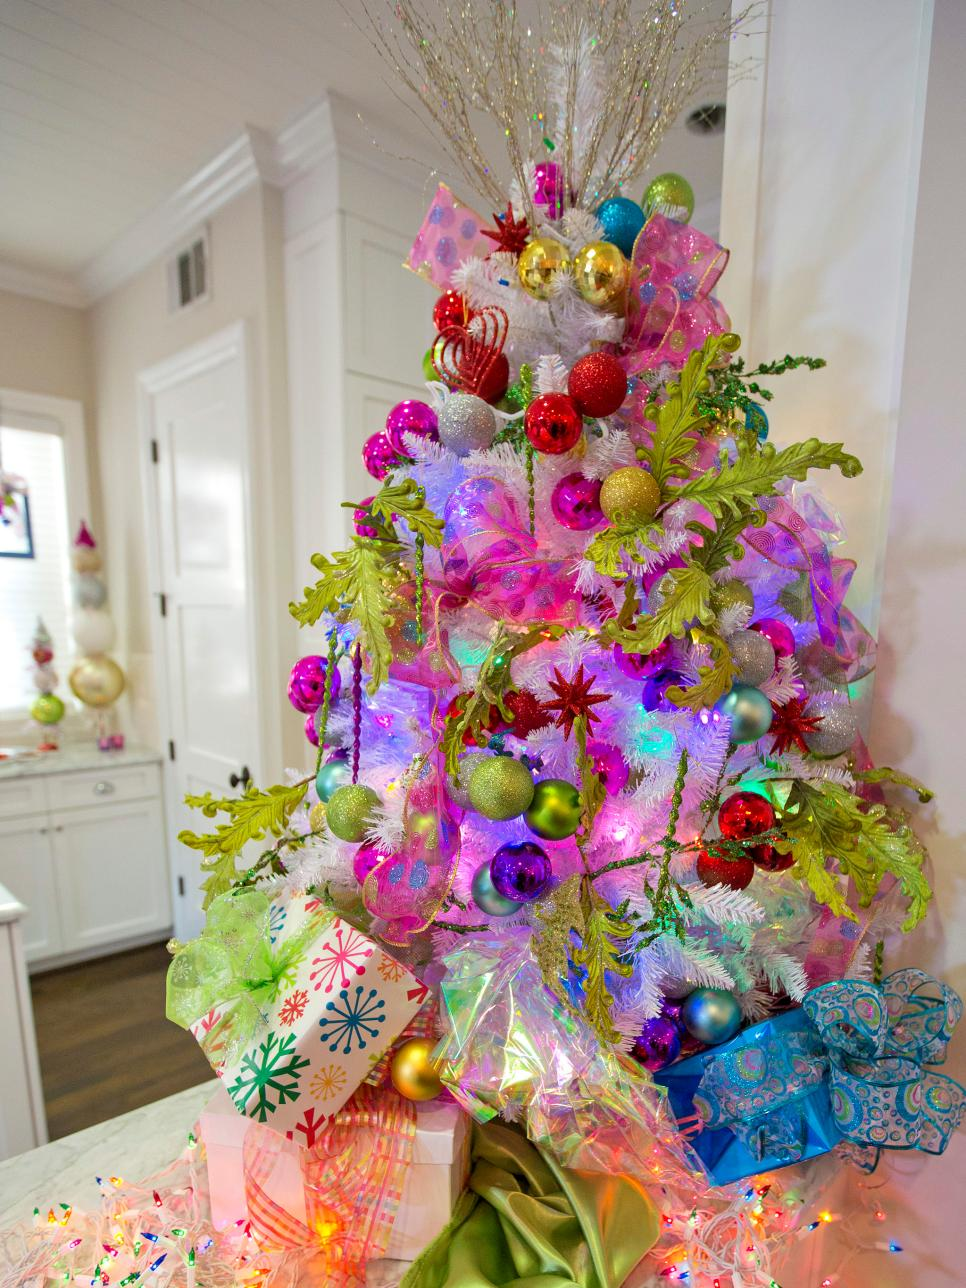 Most Gorgeous Christmas Tree Decorating Ideas For 2016. Outdoor Christmas Decorating Ideas For Trees. Easy Christmas Ornaments To Make At School. Cheap Christmas Decorations Clearance. Christmas Decorations Downtown Chicago 2013. Homemade Christmas Ornaments Youtube. New Home Christmas Decorations. Christmas Decorations For Outdoor Urns. How To Decorate A Christmas Tree Speech